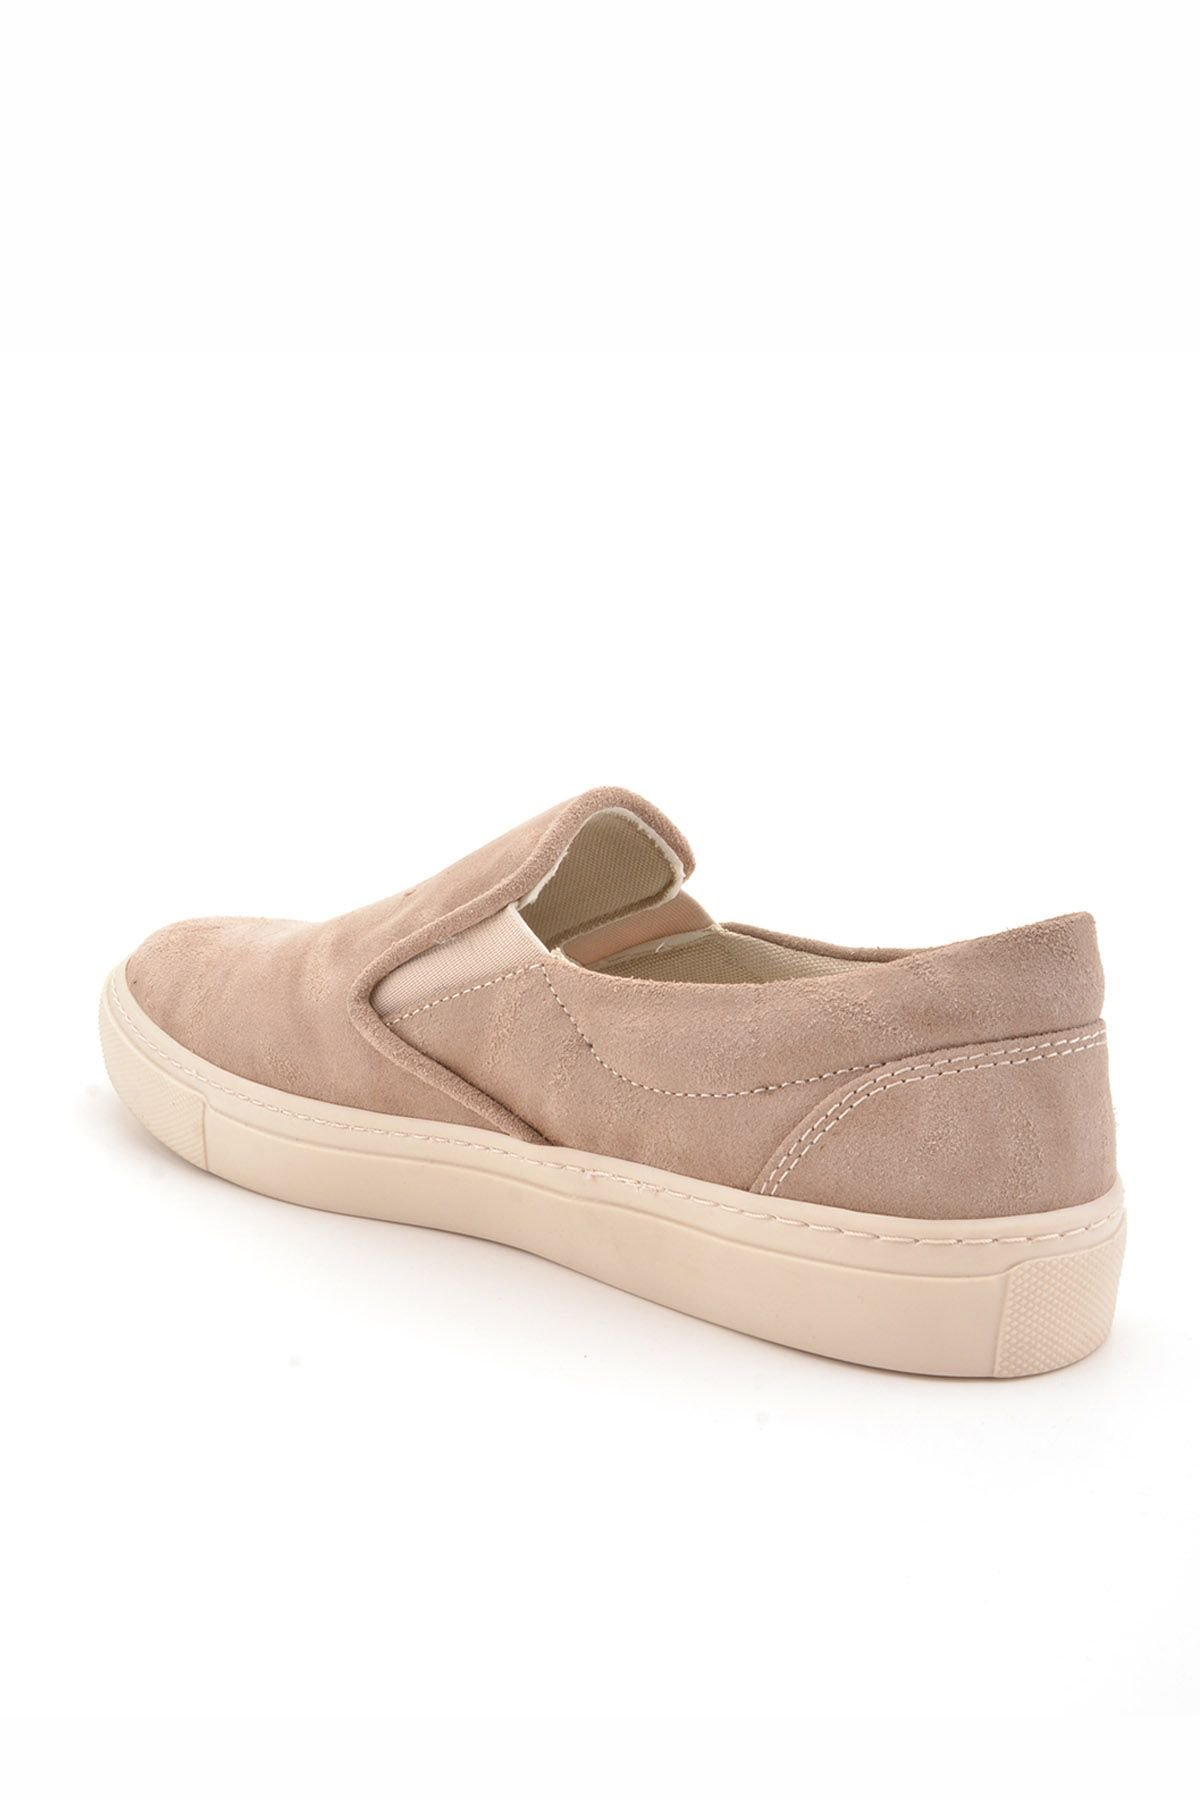 Art Goya Aged Women Sneakers From Genuine Leather Cream